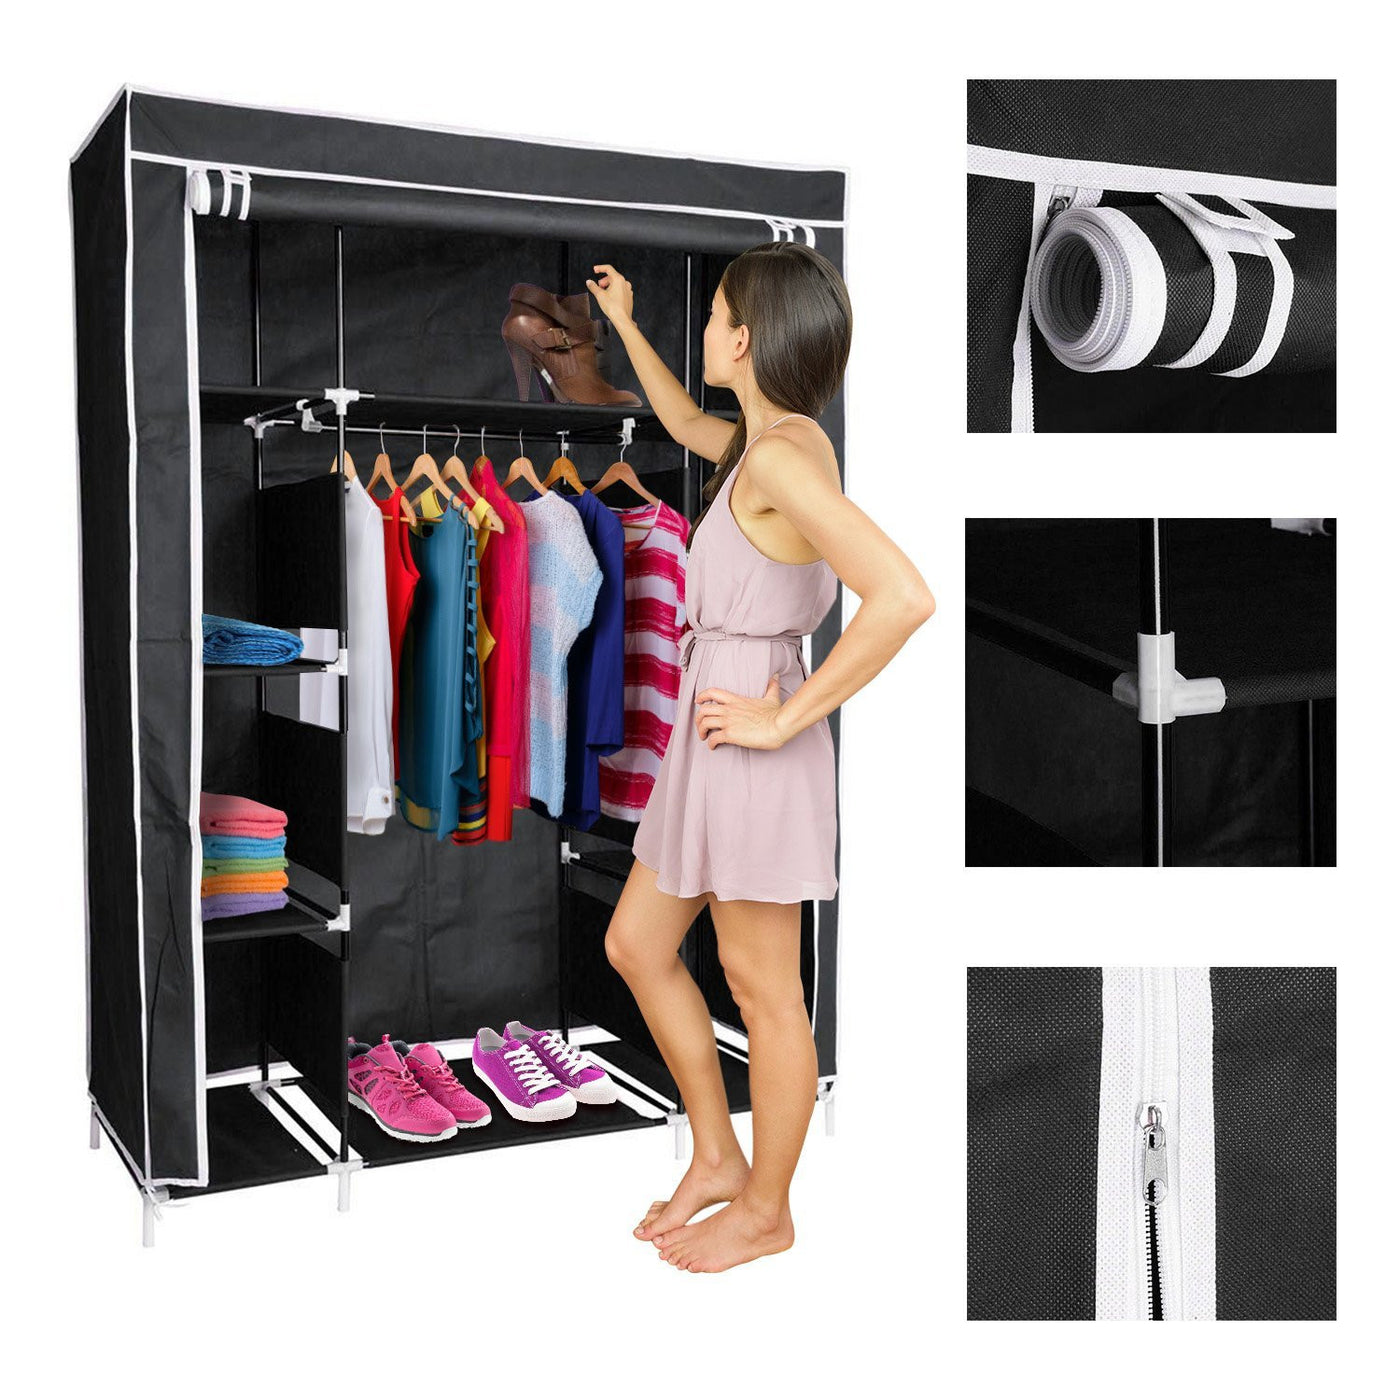 com seen boot amazon with butler organizer clean hanging rachael on rack as jl your assemble closets dp up ray closet floor easy to storage built by